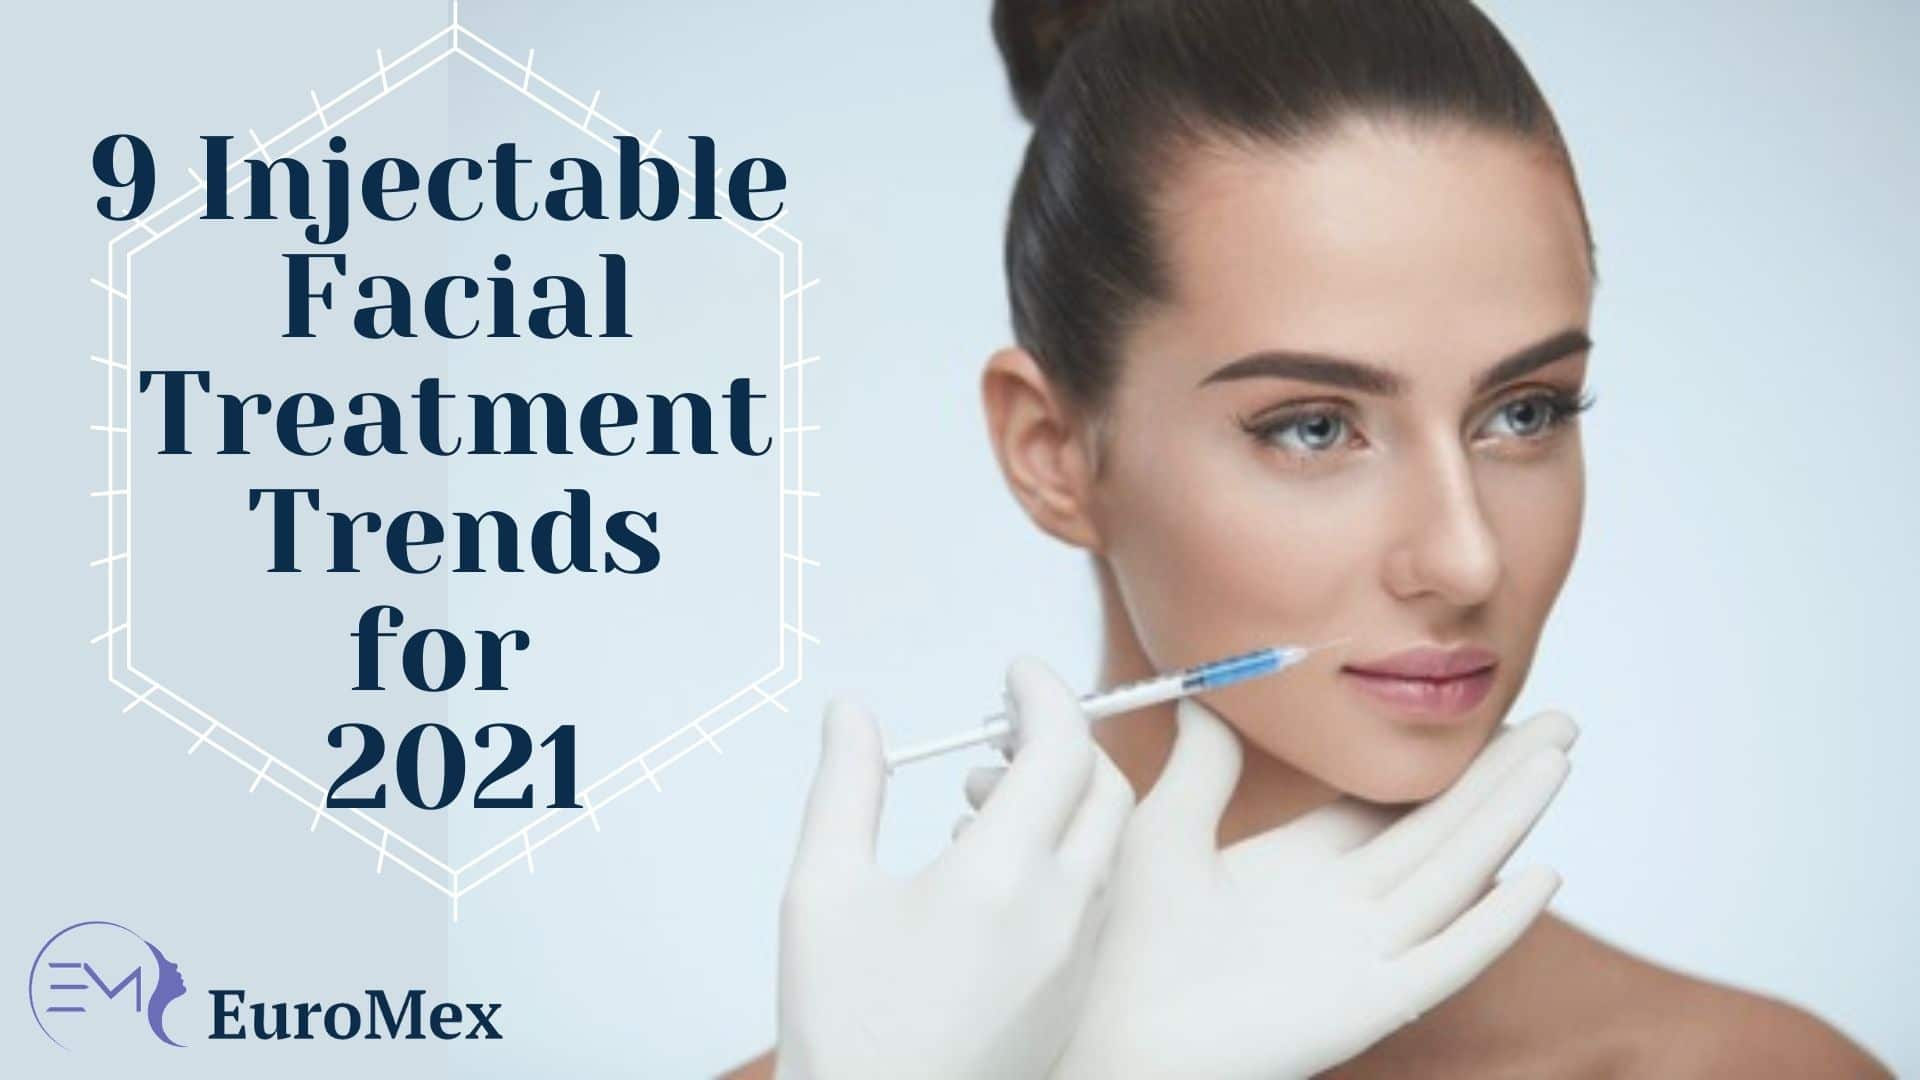 9 Injectable Facial Treatment Trends